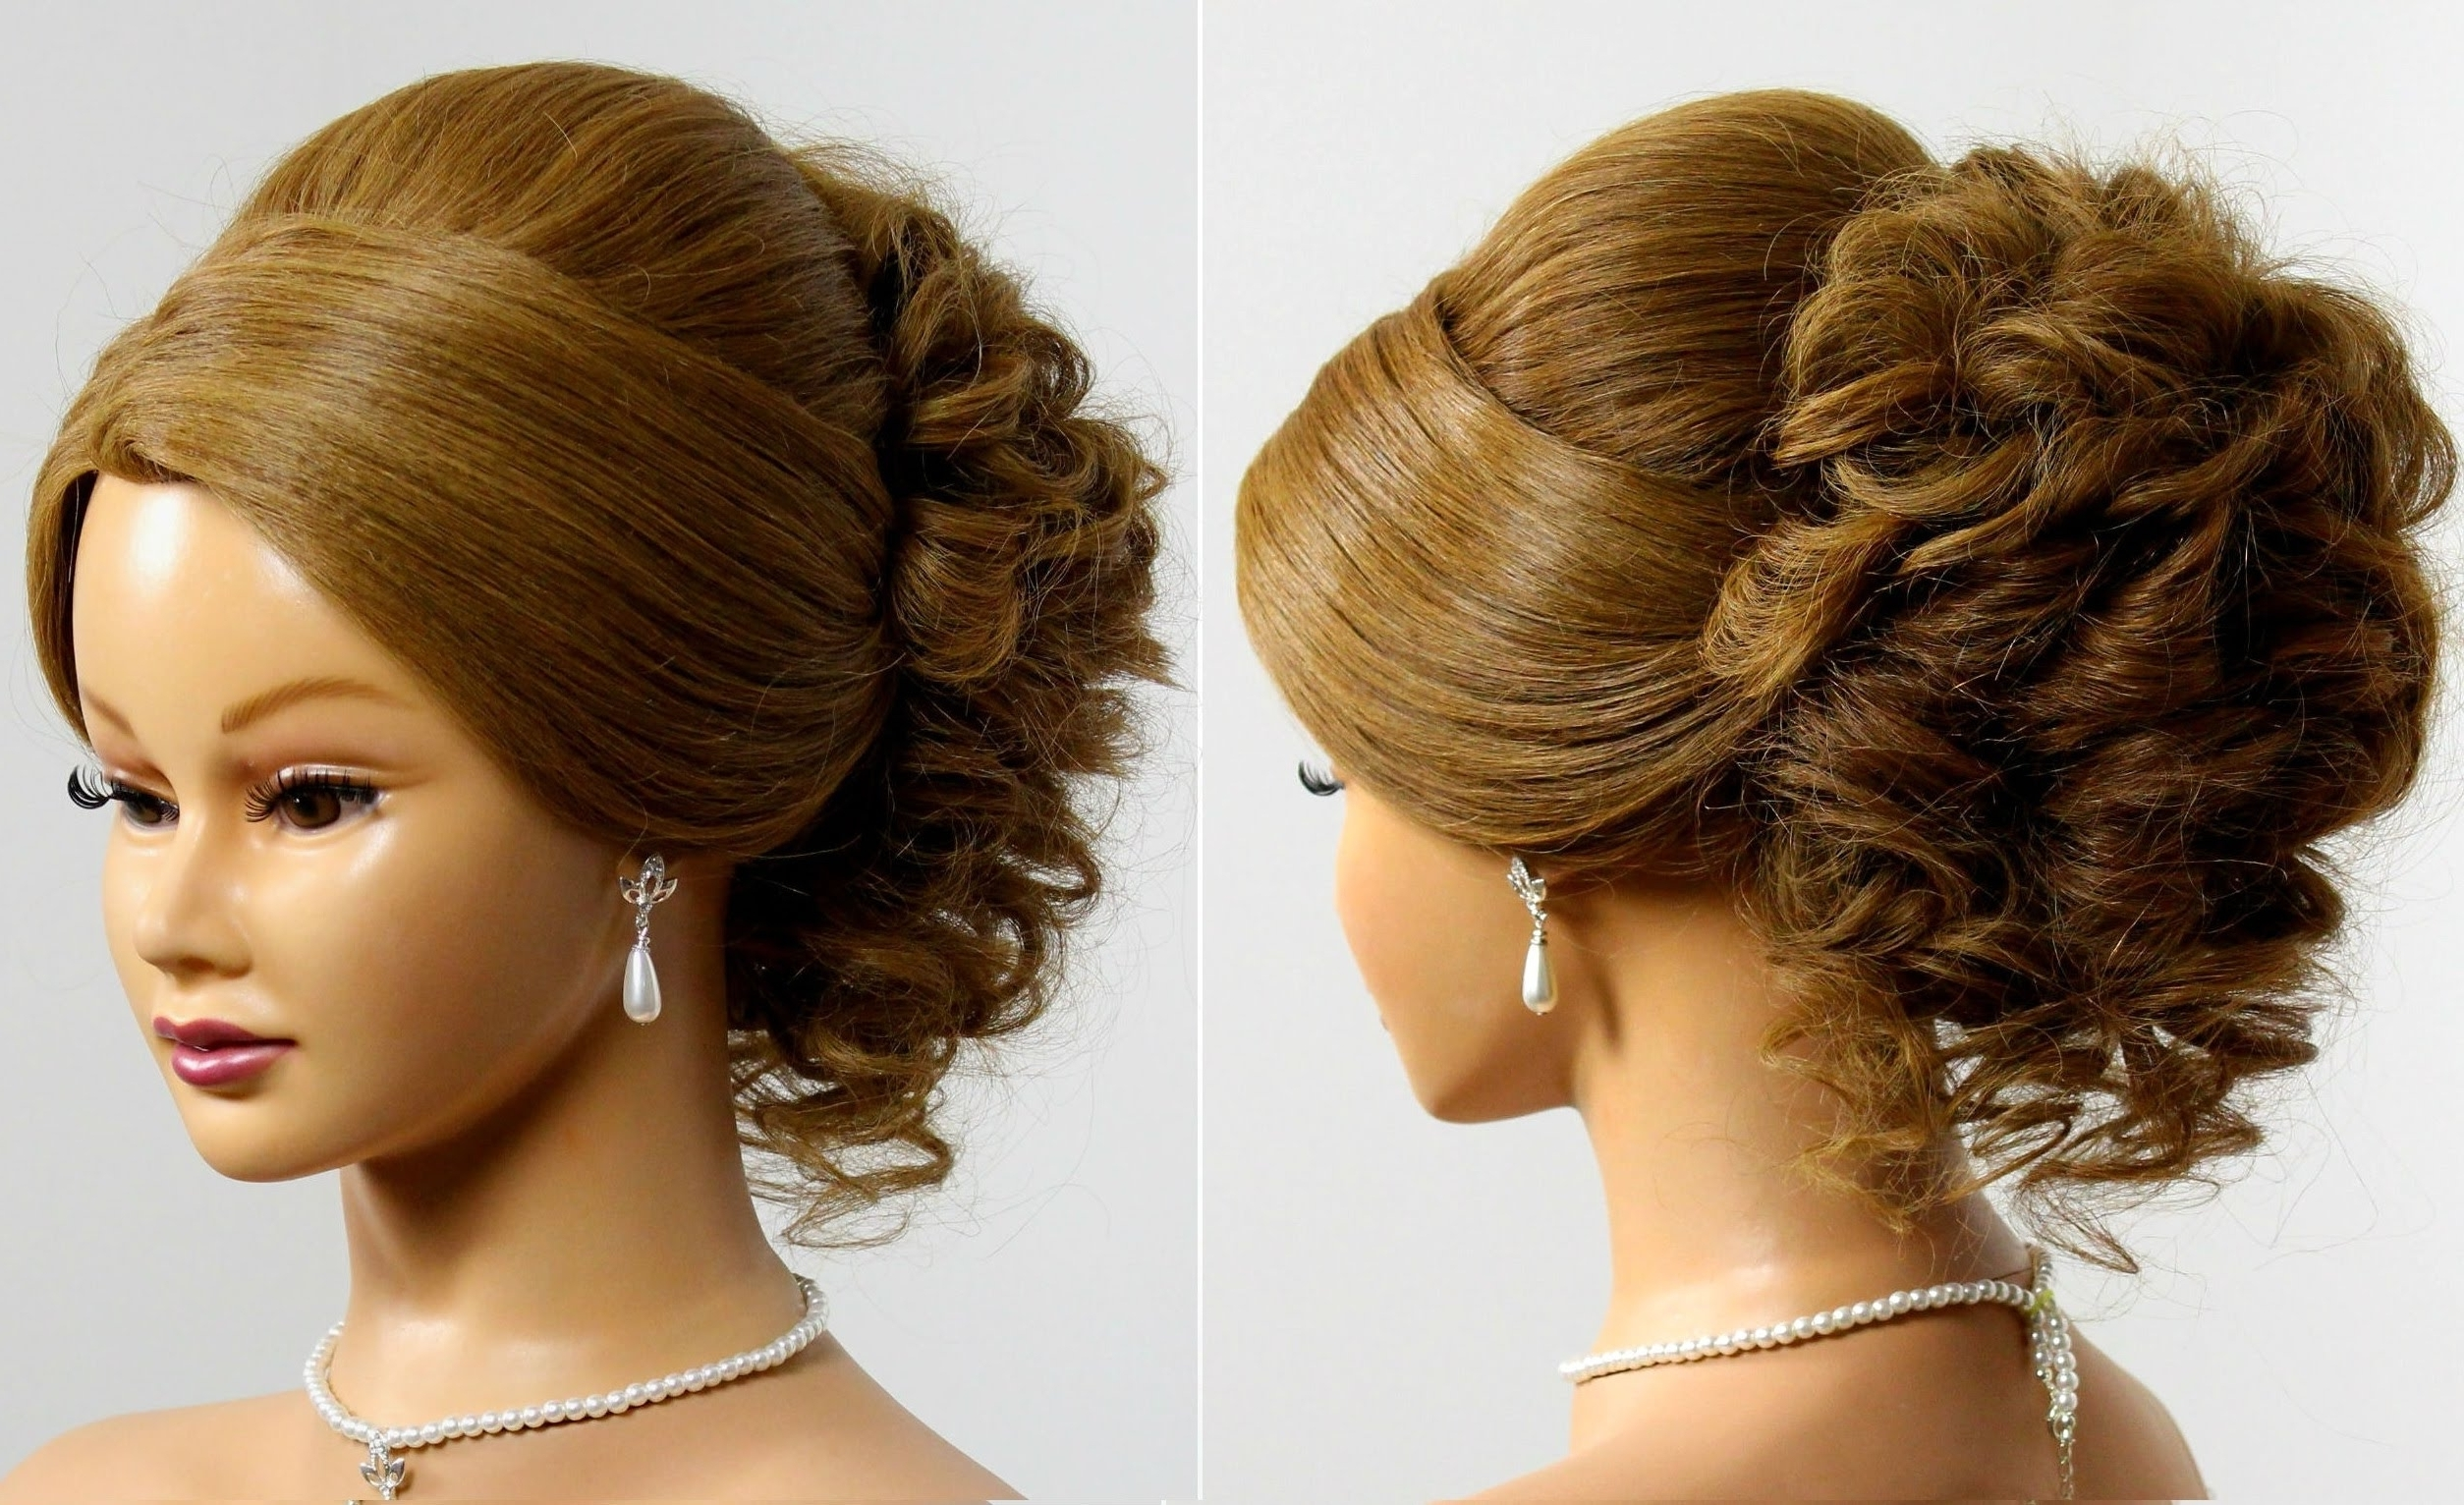 Fancy Updo Hairstyles For Long Hair Updo Hairstyles For Medium Hair Intended For Fancy Updo Hairstyles For Medium Hair (View 2 of 15)